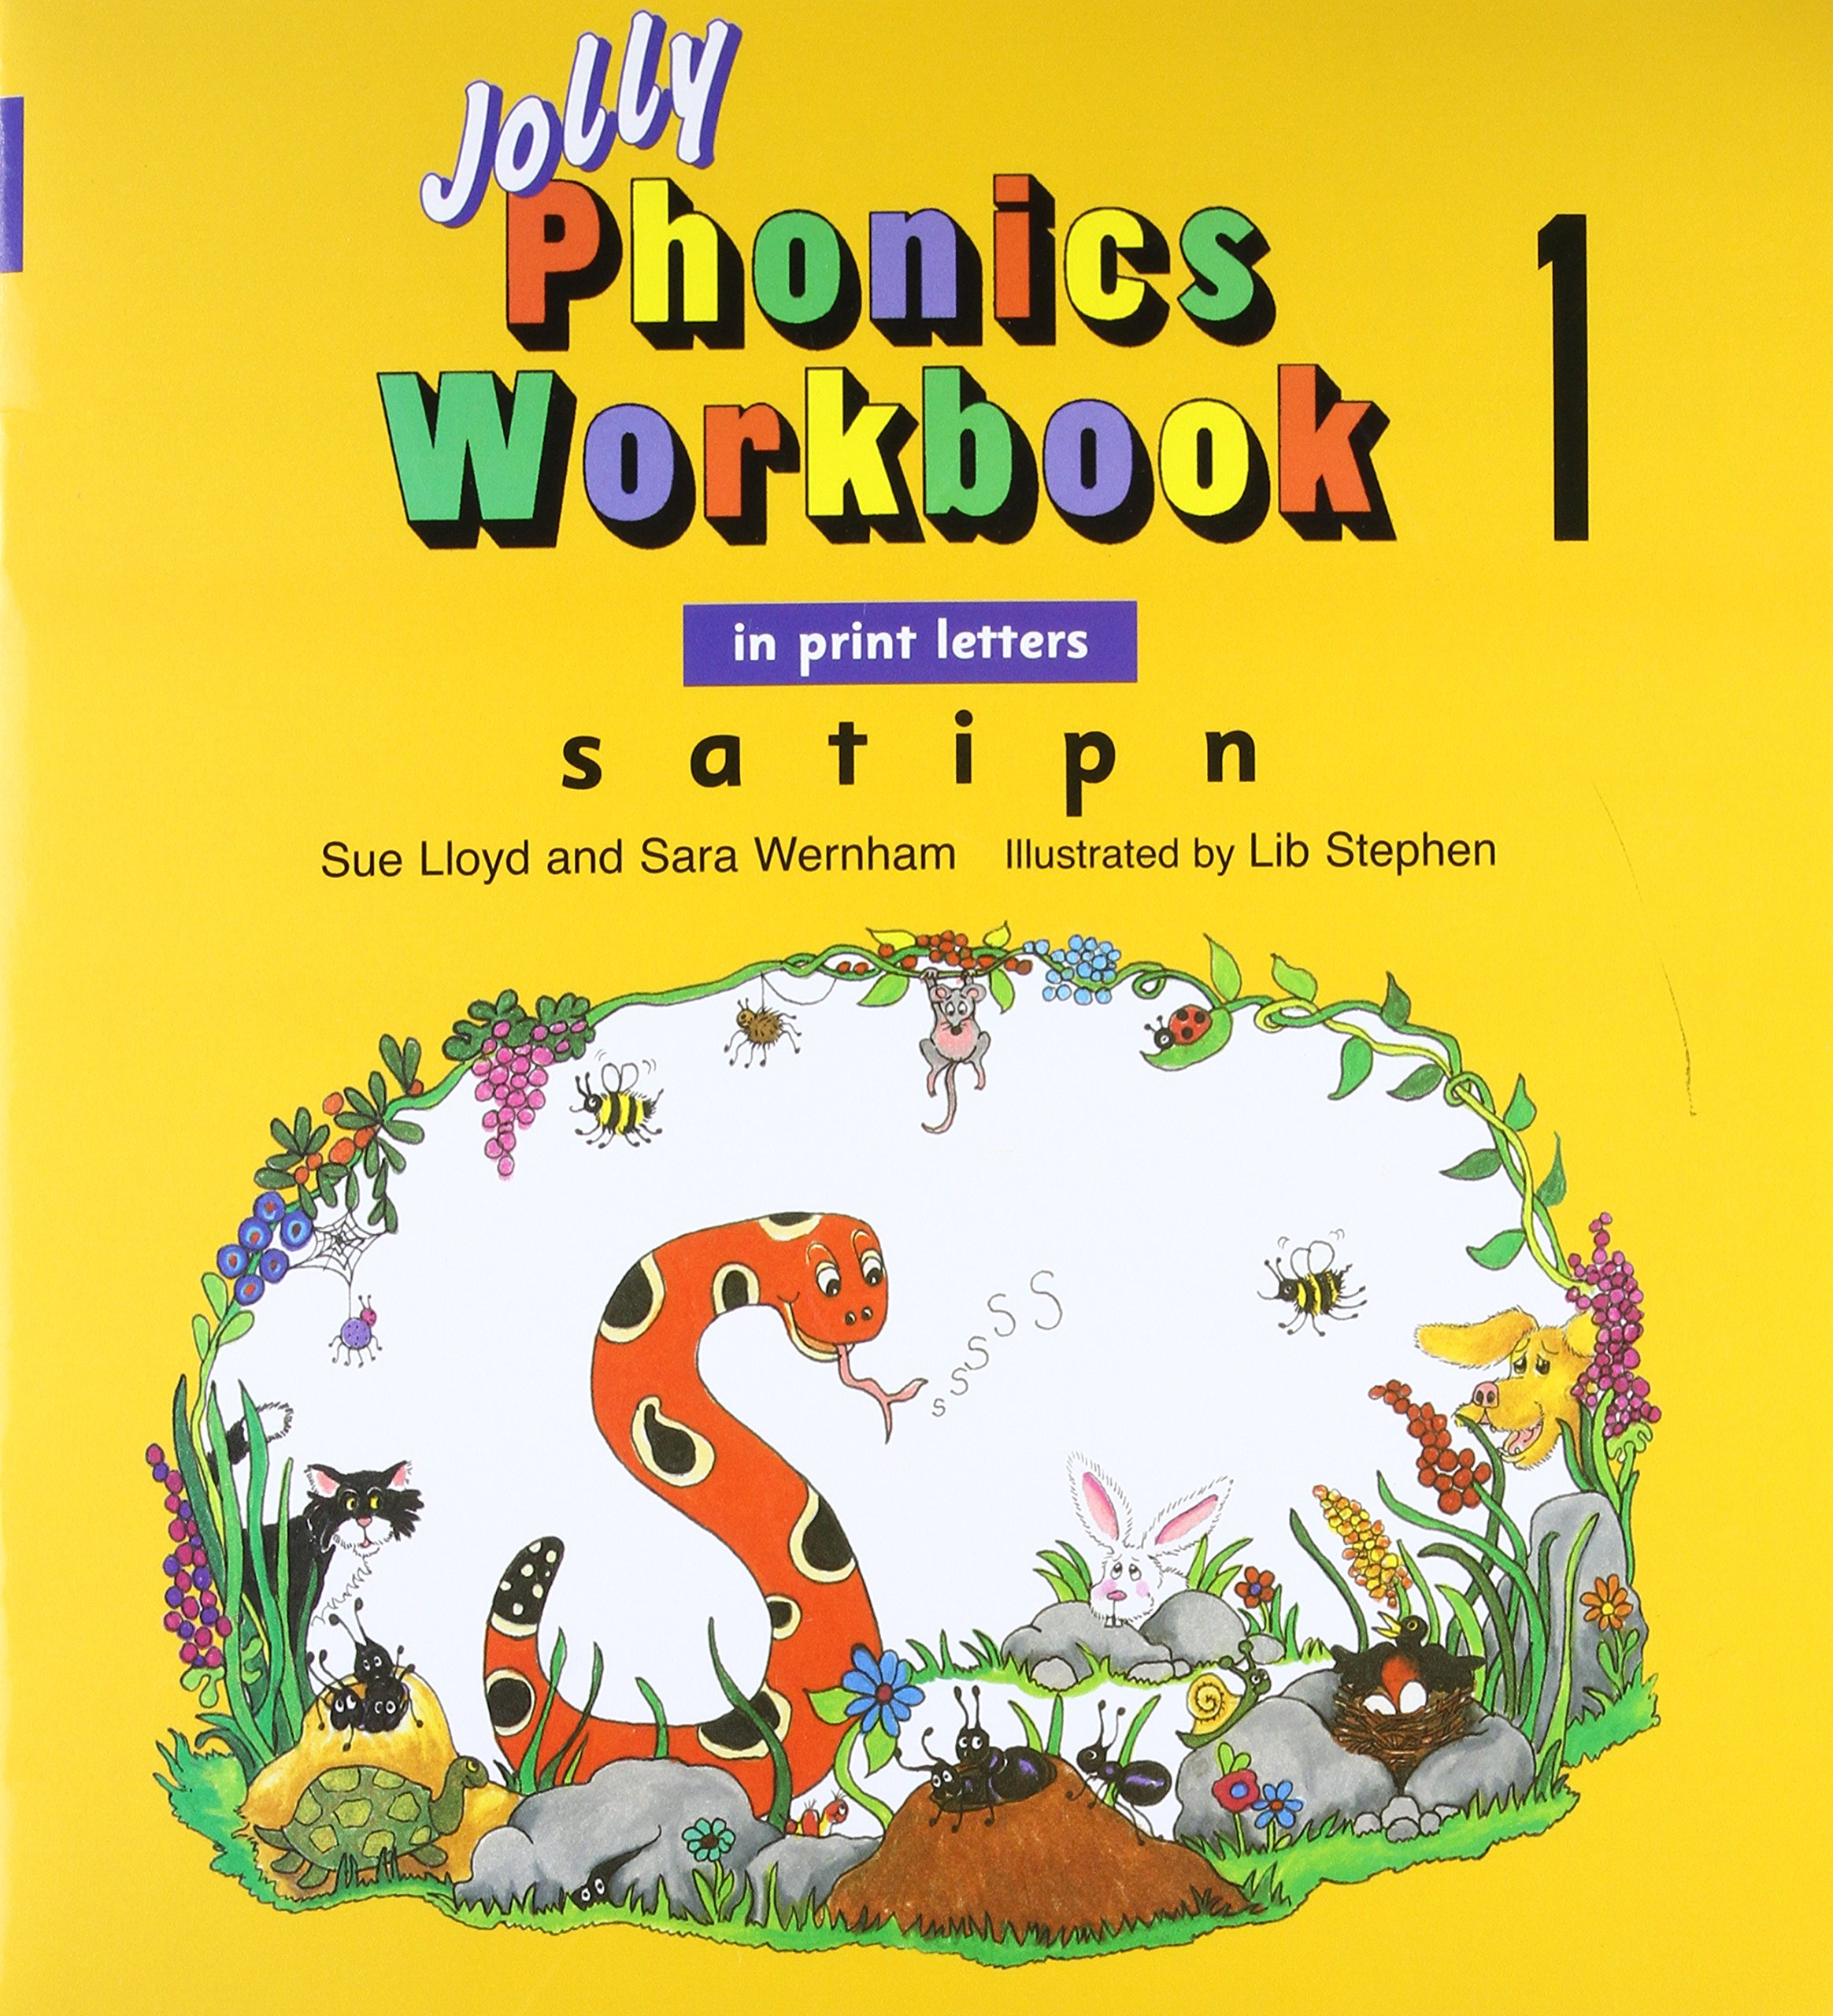 Sims Free Jolly Phonics Worksheets For Kindergarten